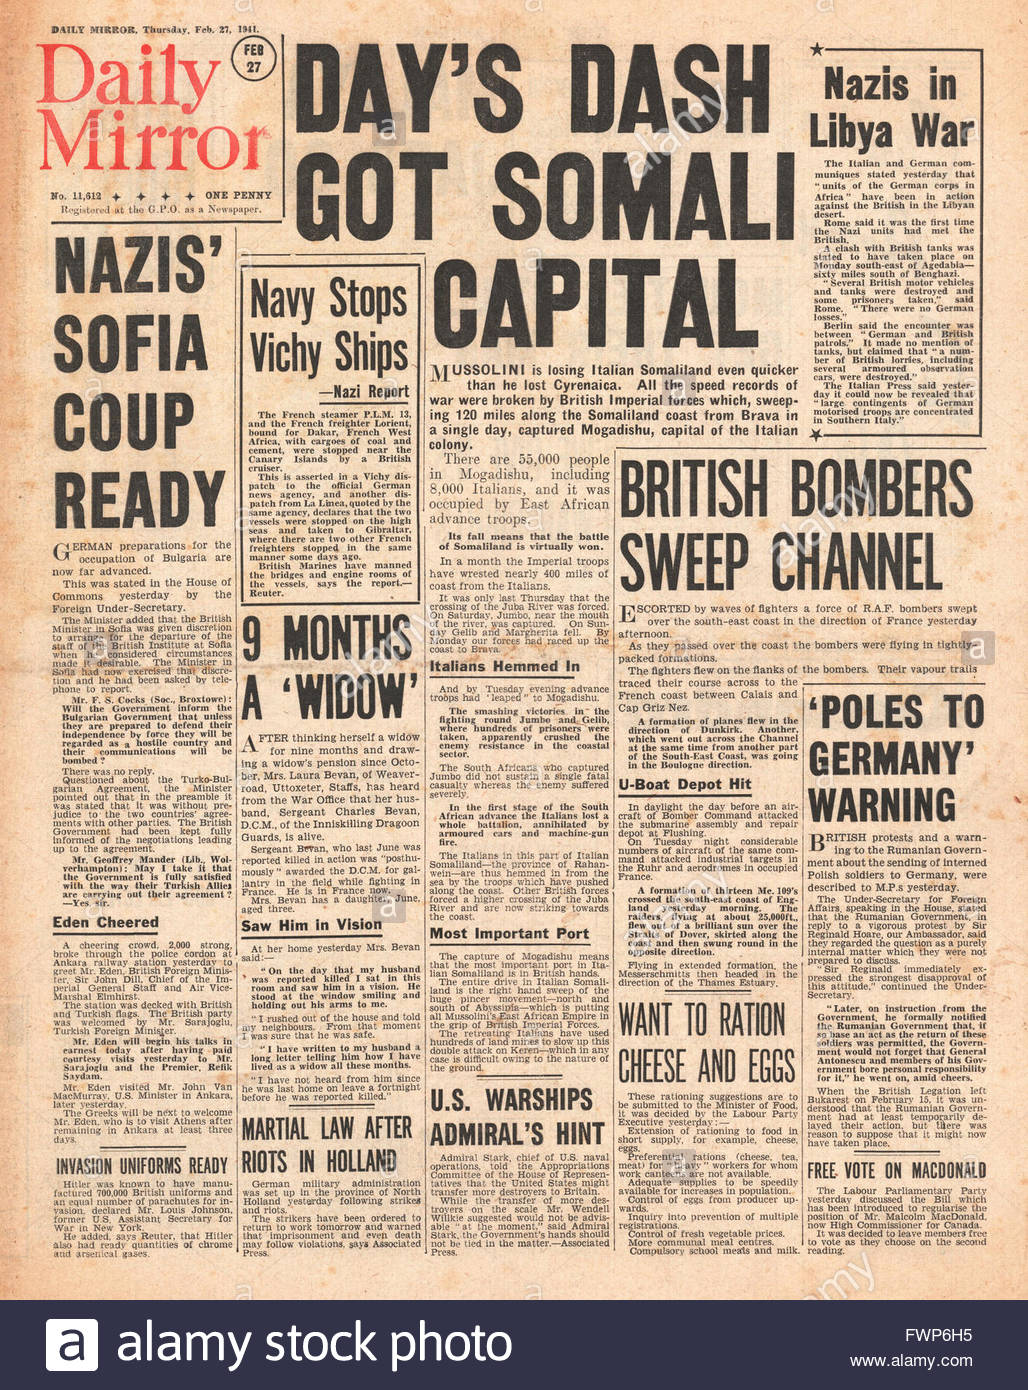 1941 front page  Daily Mirror Imperial Forces capture Mogadishu in Italain Somaliland and RAF bomb Channel ports - Stock Image